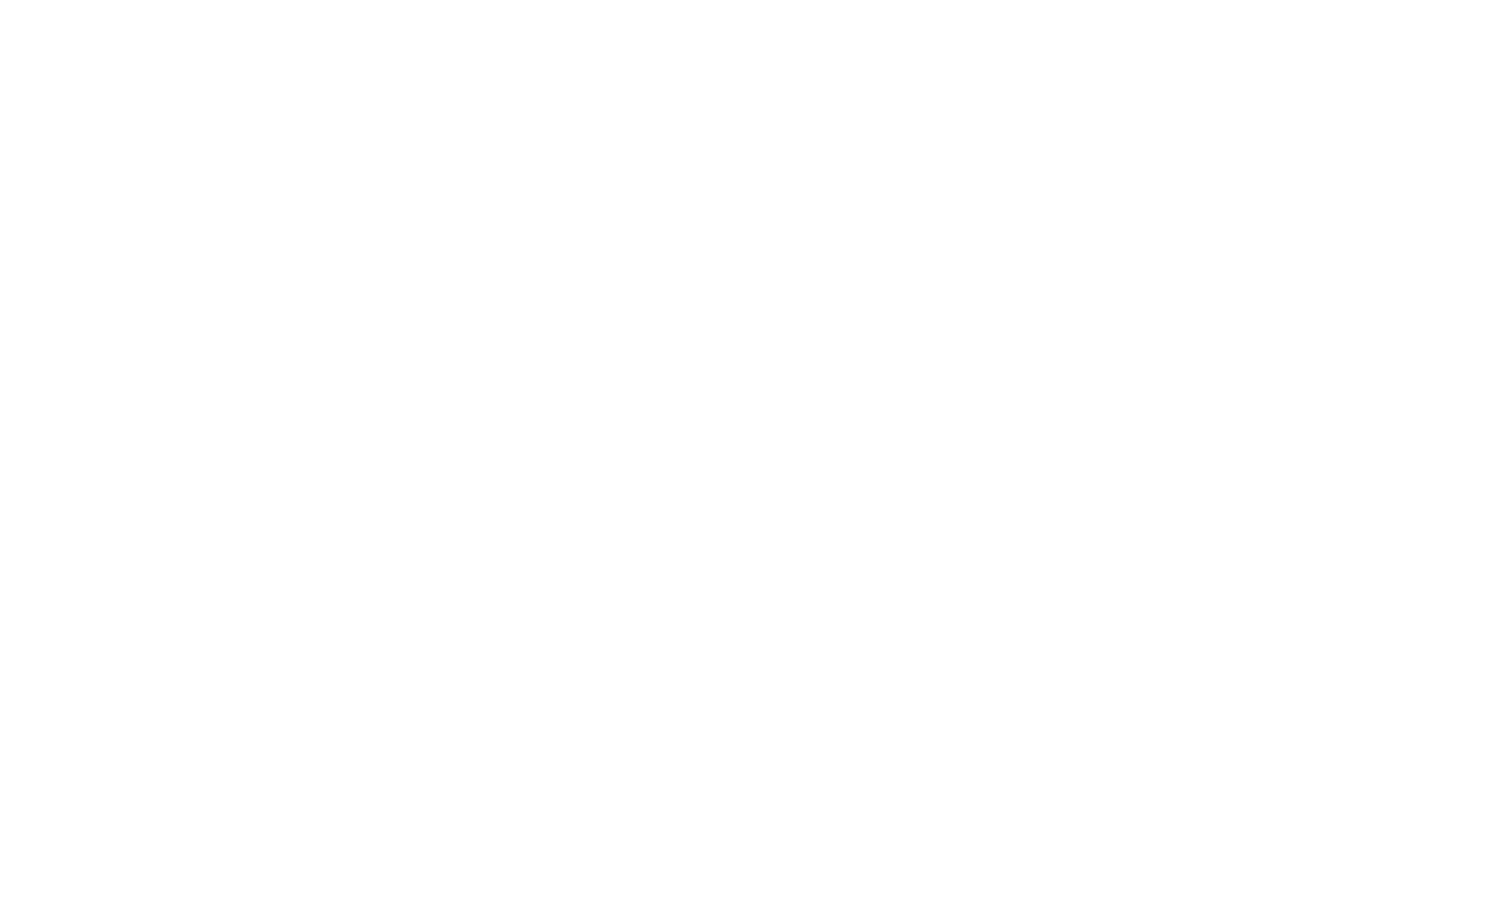 Aardvark Certification Limited